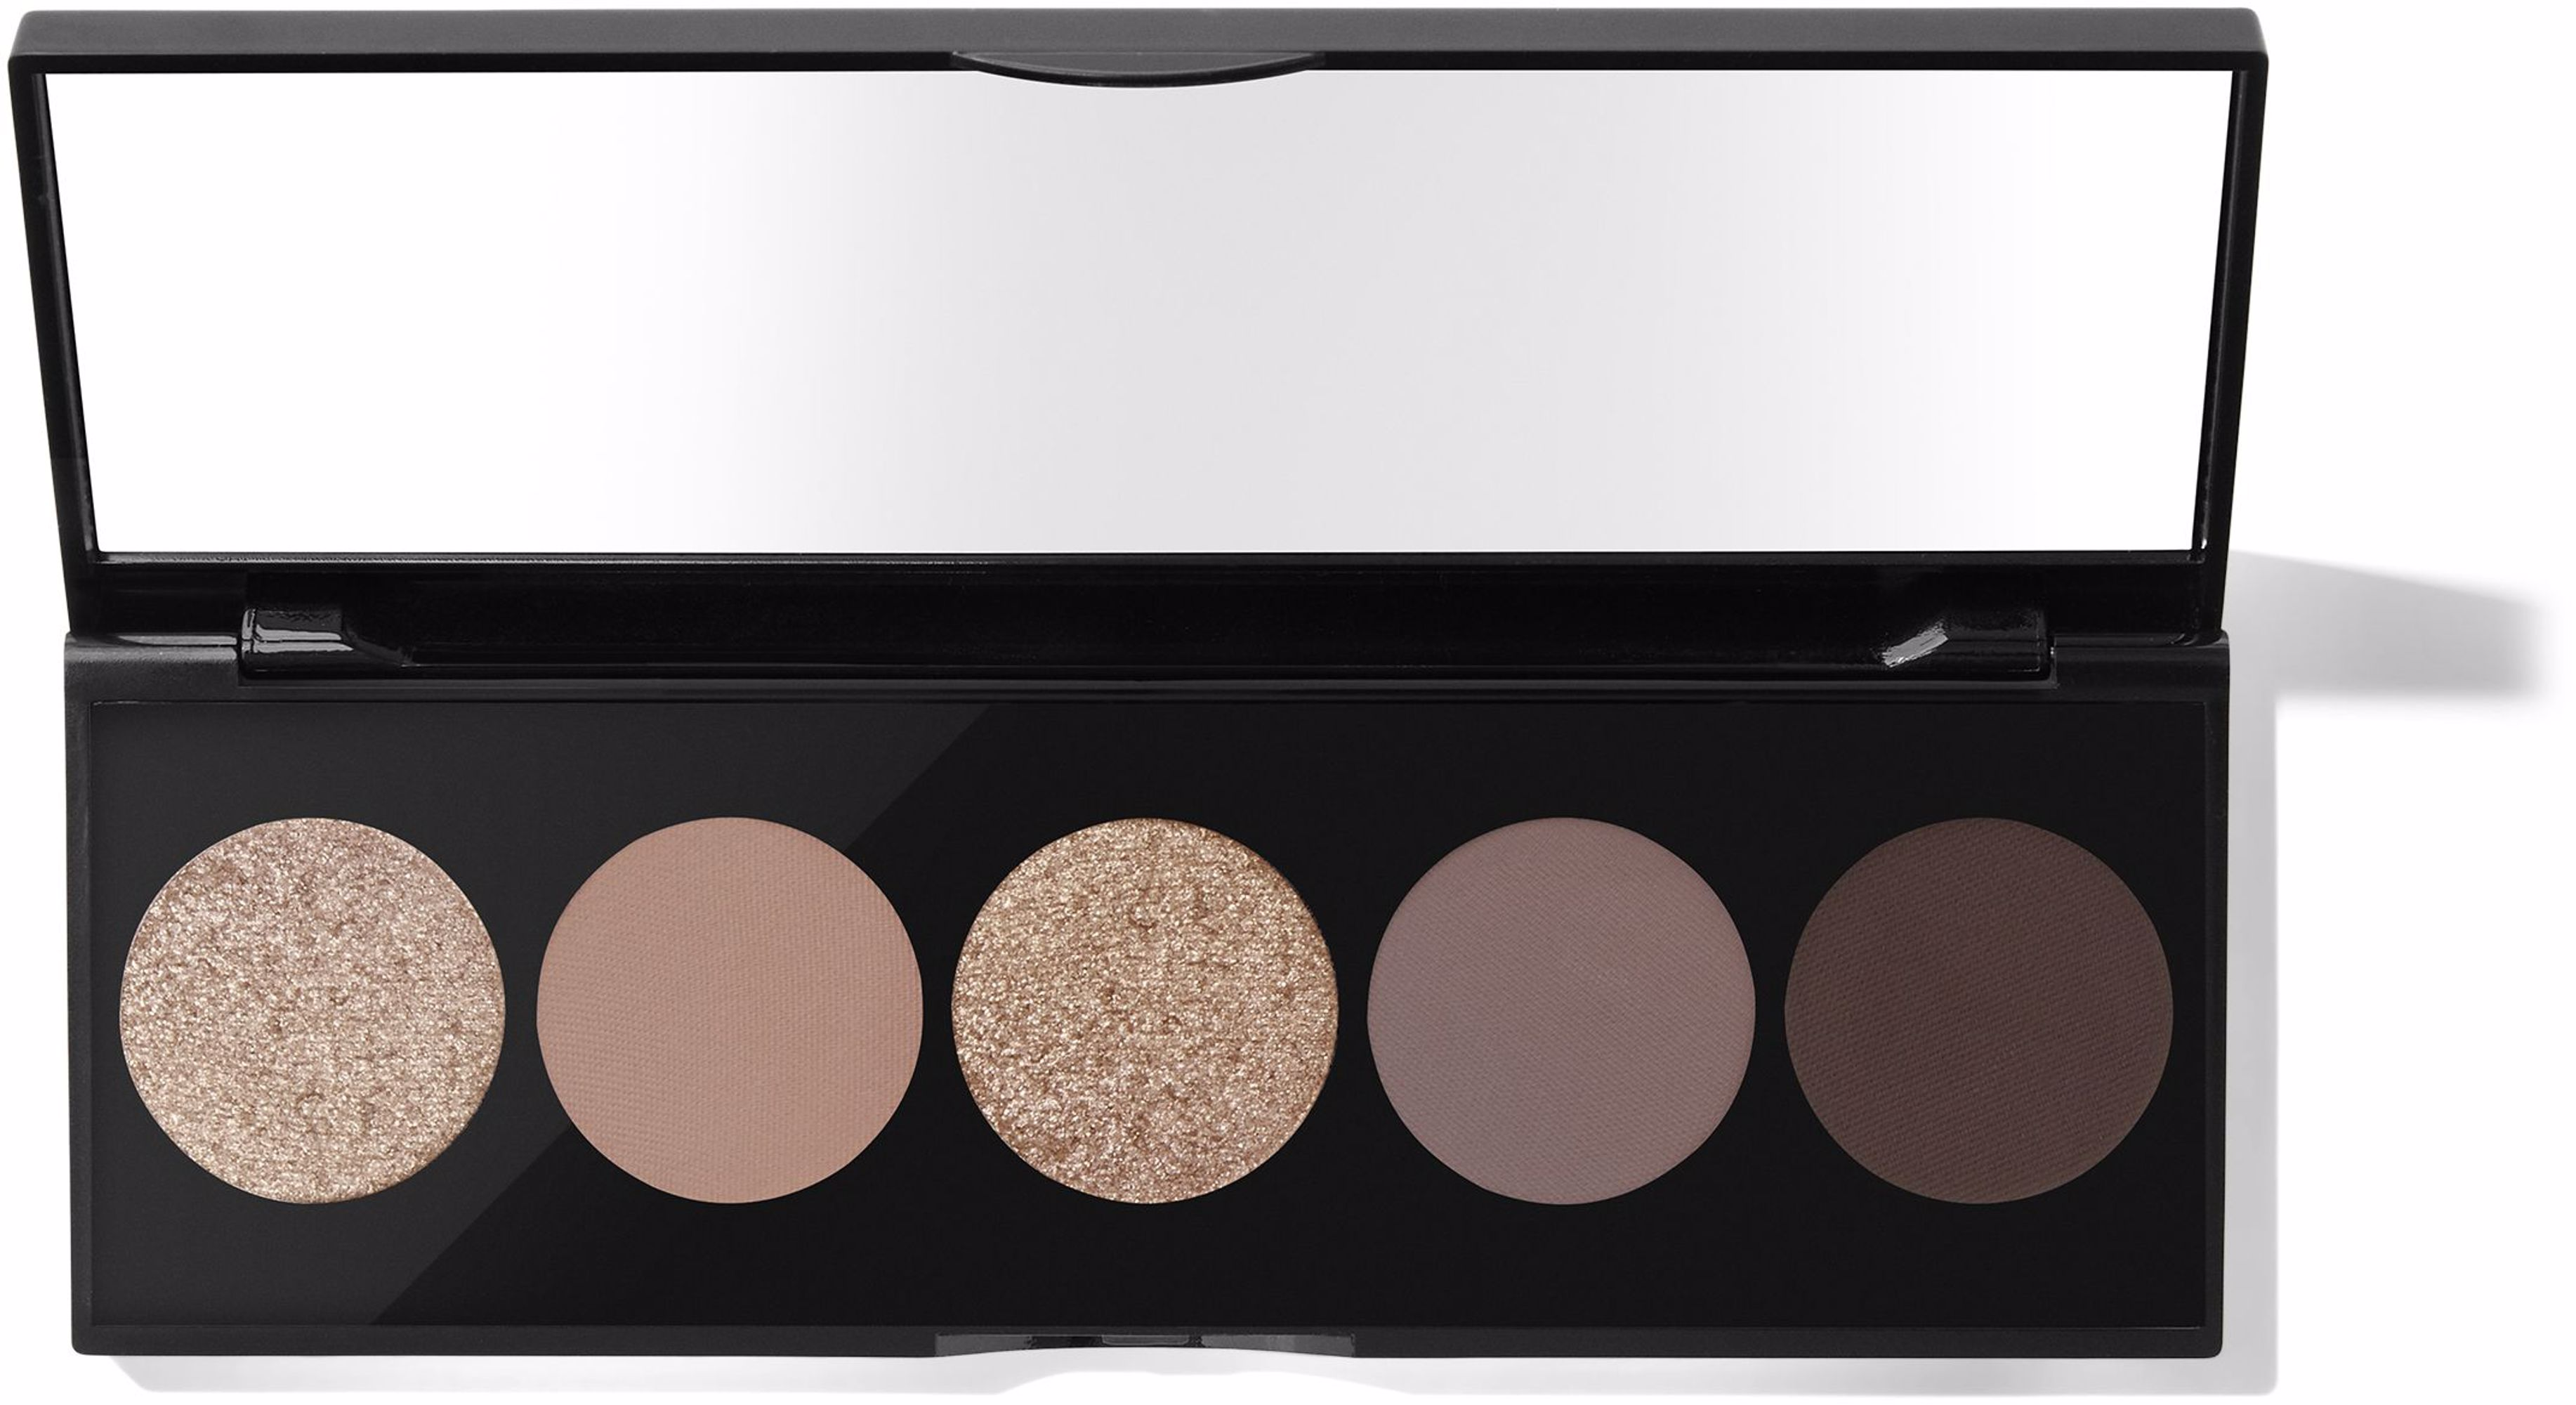 Real Nudes Eye Shadow Palette - Stonewashed Nudes